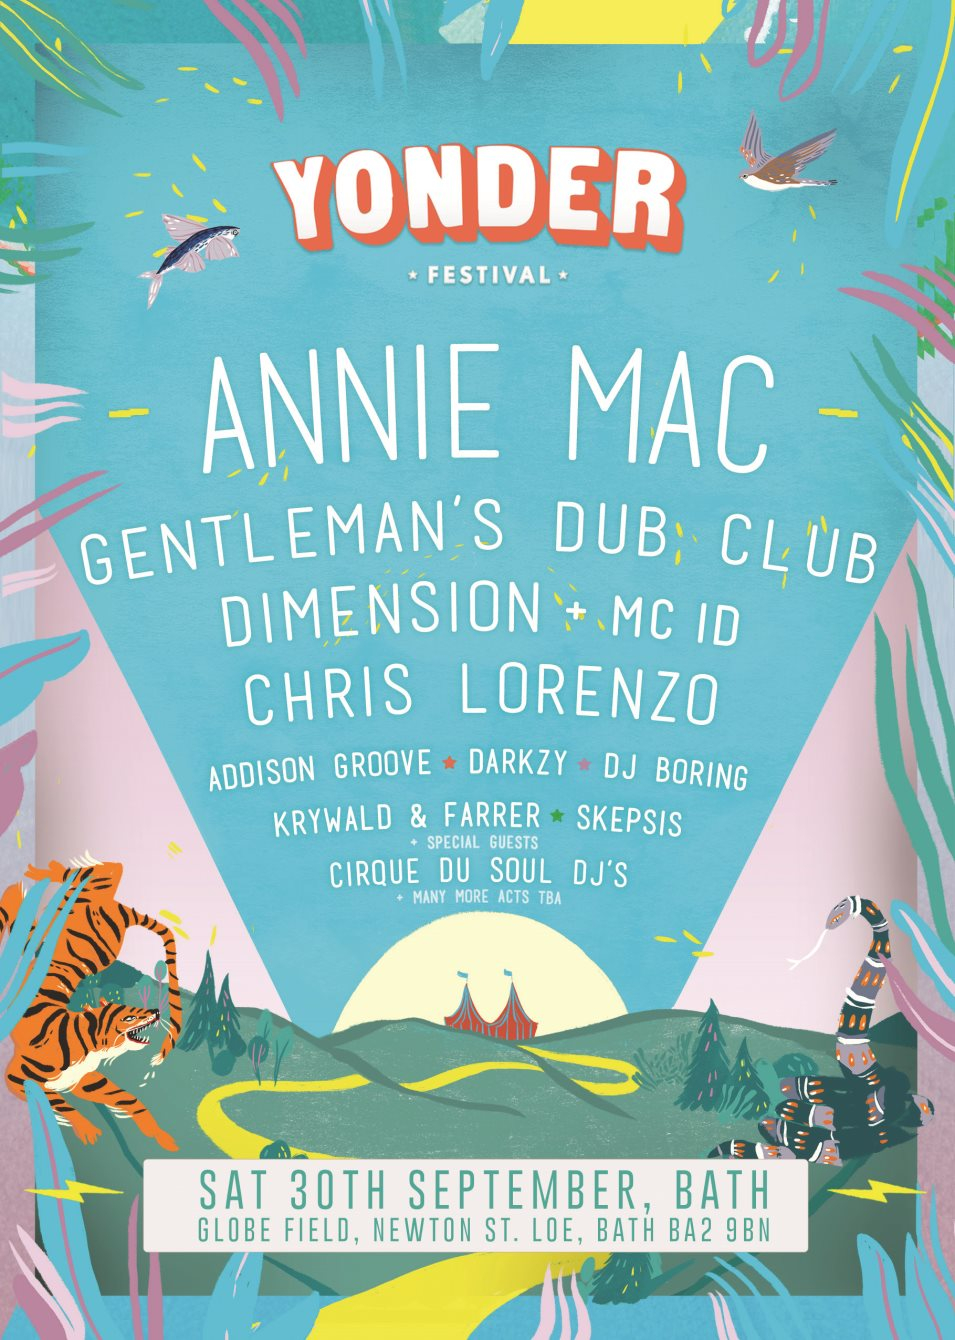 ra yonder festival 17 with annie mac at tba west wales west